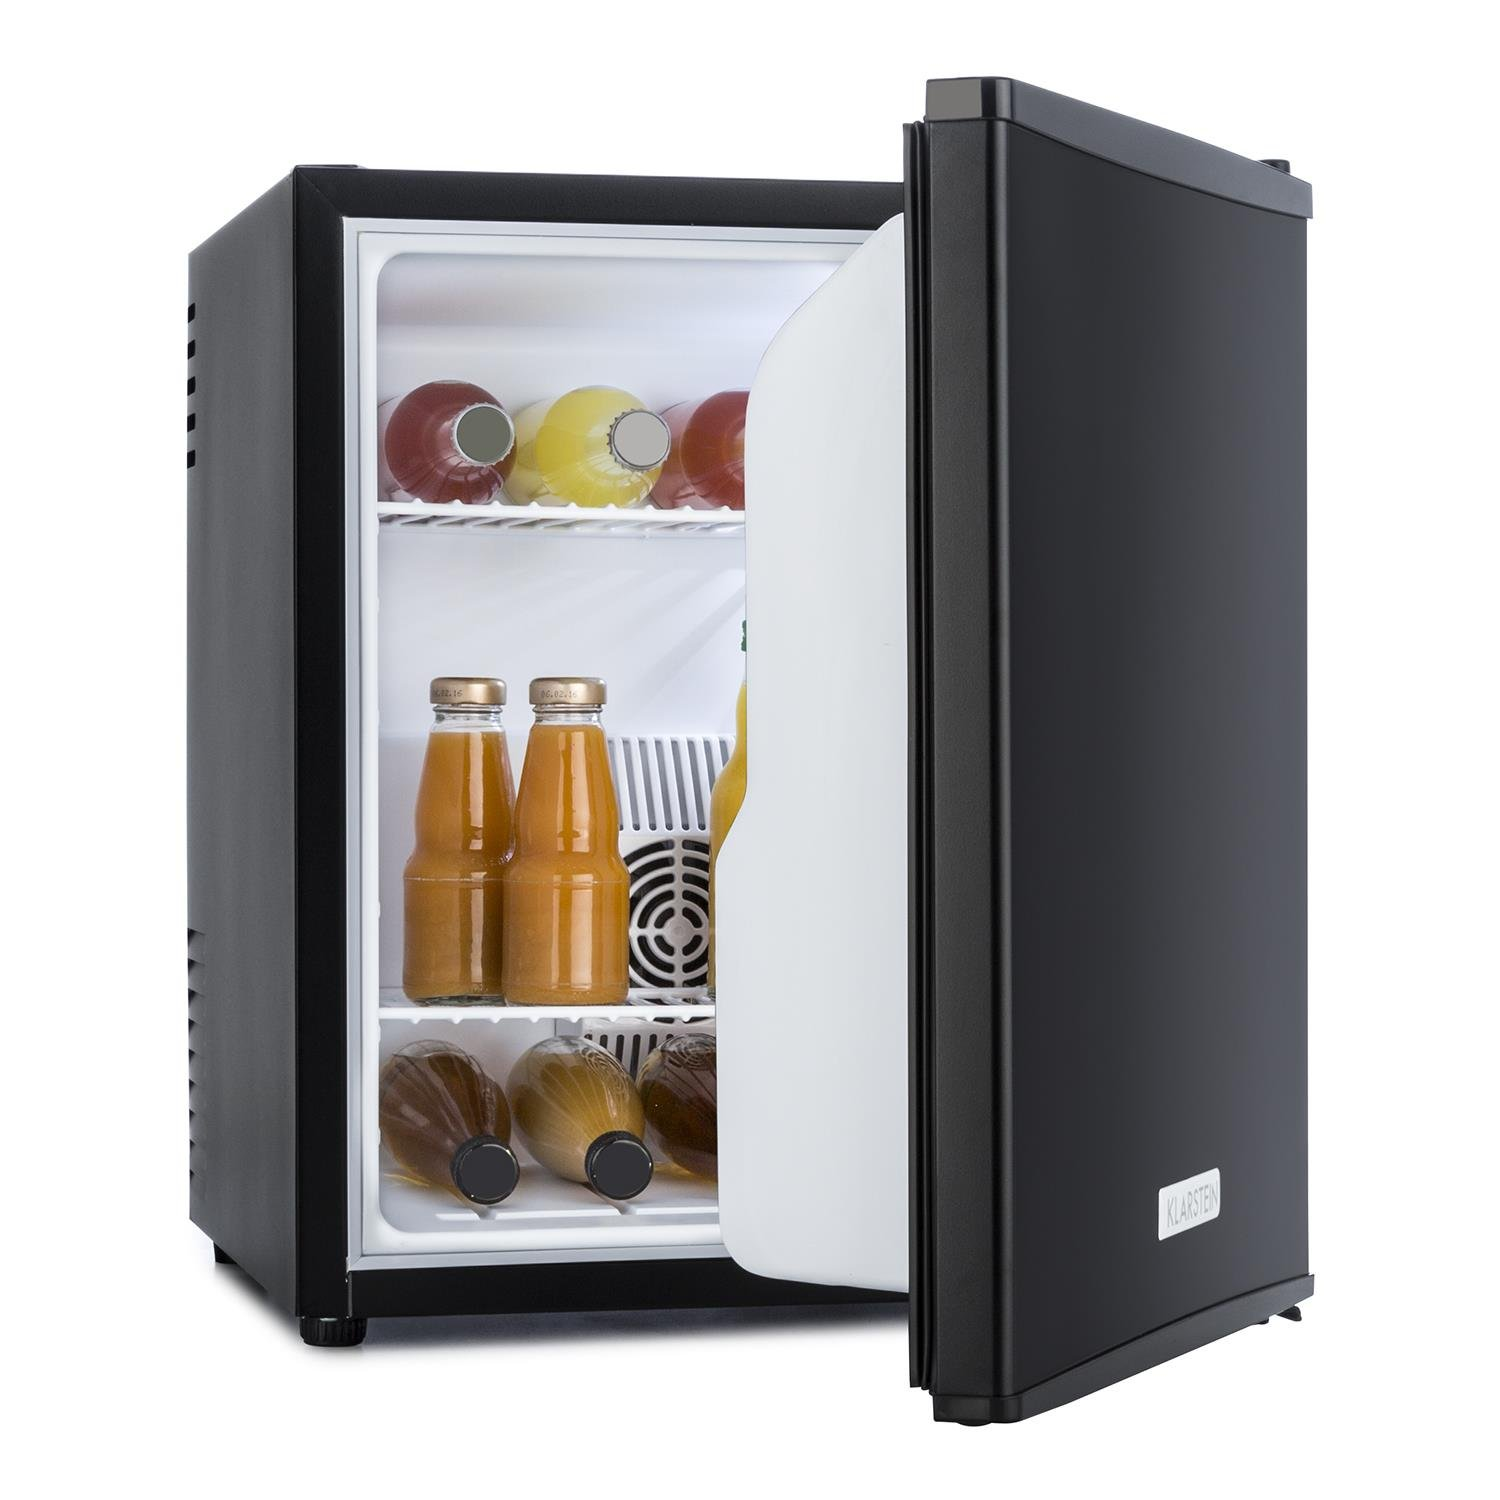 Klarstein Manhattan Mini Fridge • Mini Bar • Refrigerator • Cooler • 35 Litre Capacity • Eco-Friendly • Removable Shelf Rack • 2 Shelf Trays • Reversible Door • Low Noise Level • Energy Class A • Ultra Compact Dimensions • Black